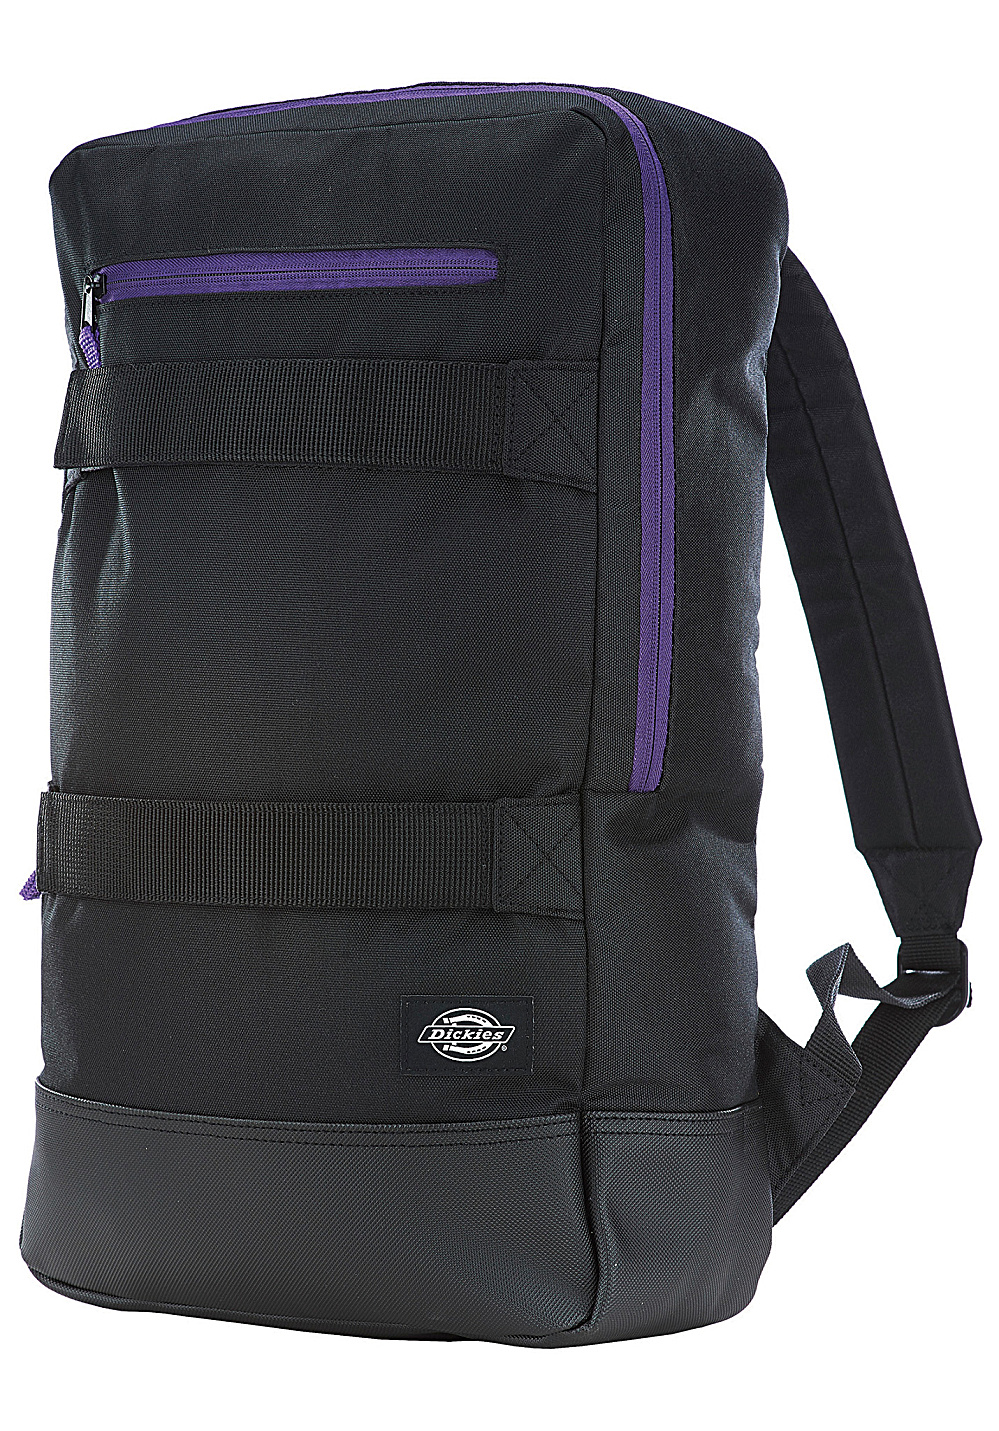 Phoenixville Backpack In Black - Black Dickies Sale In China Cheap Hot Sale Discount Manchester Great Sale Cheap Sale Original HdVBDUKd